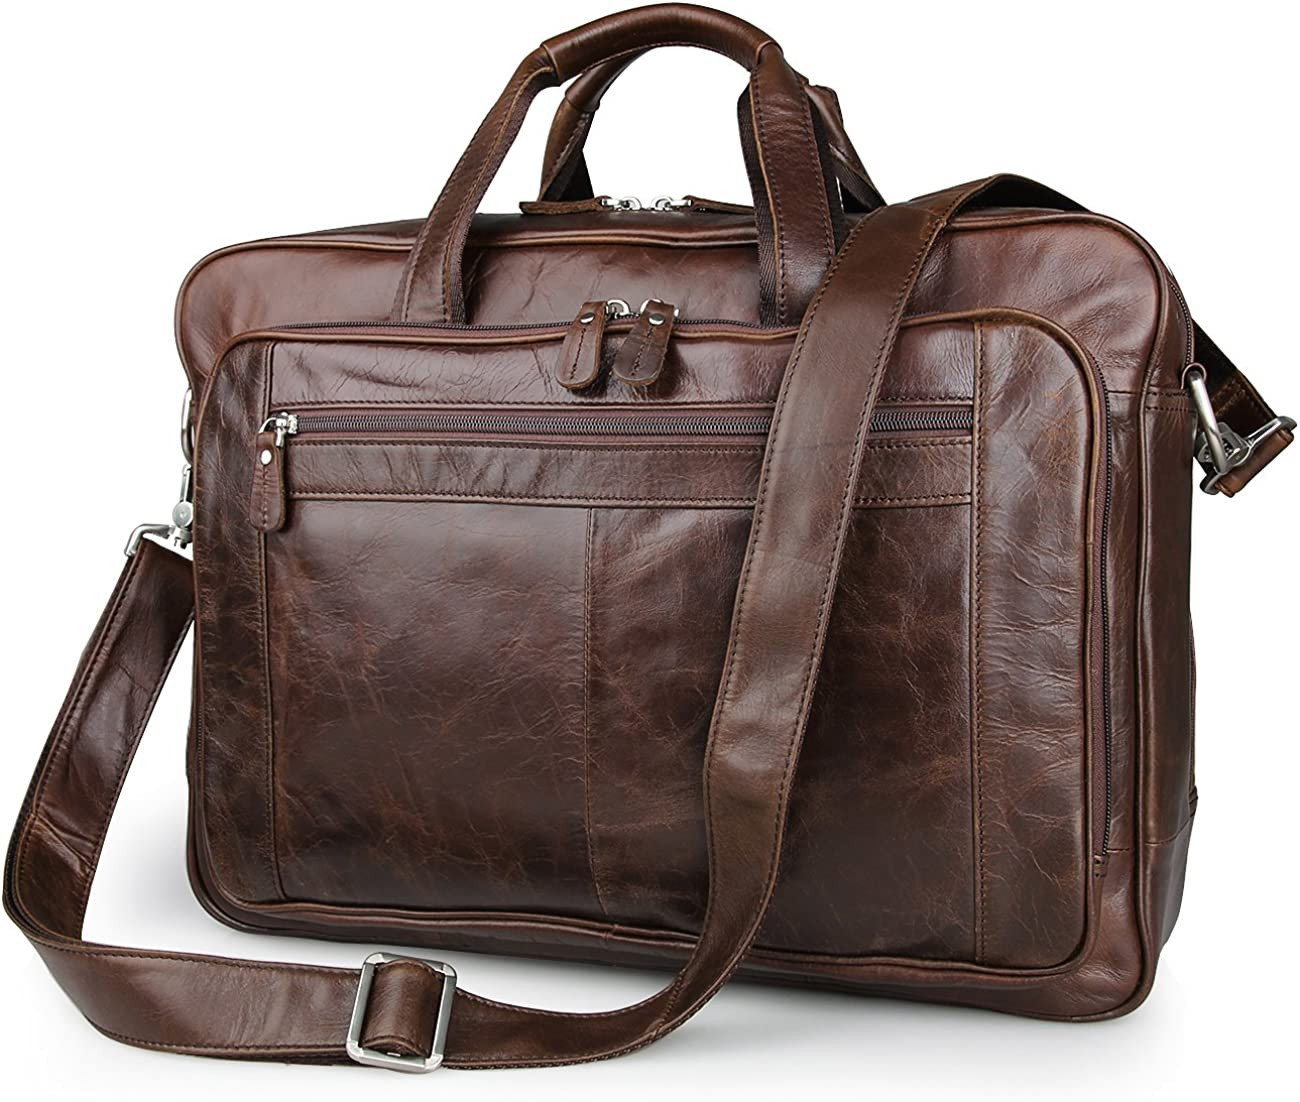 ESD CLEARANCE SALES Vintage Genuine Leather Briefcase